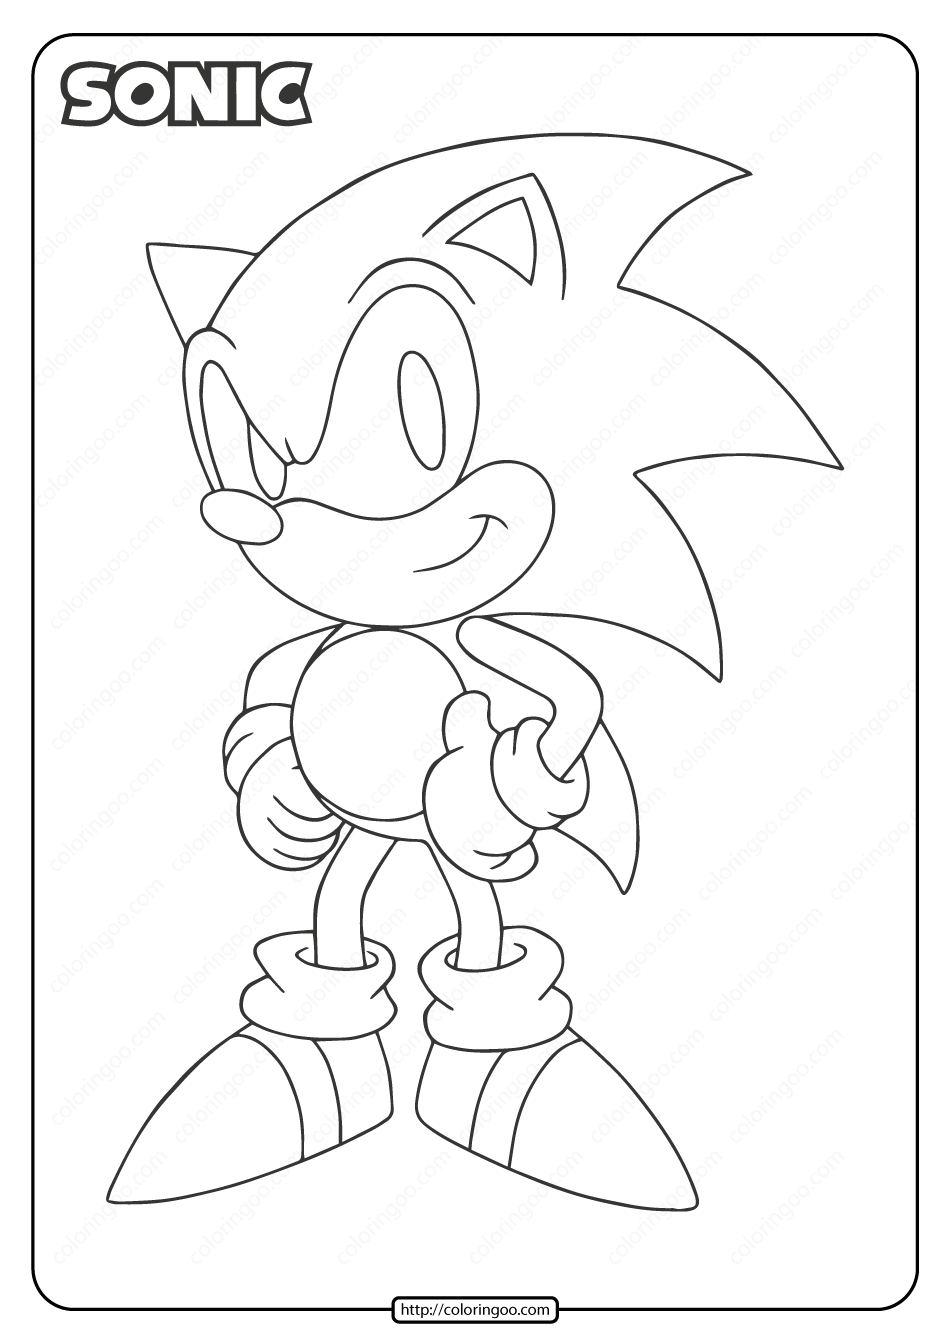 Sonic The Hedgehog Coloring Pages Pdf